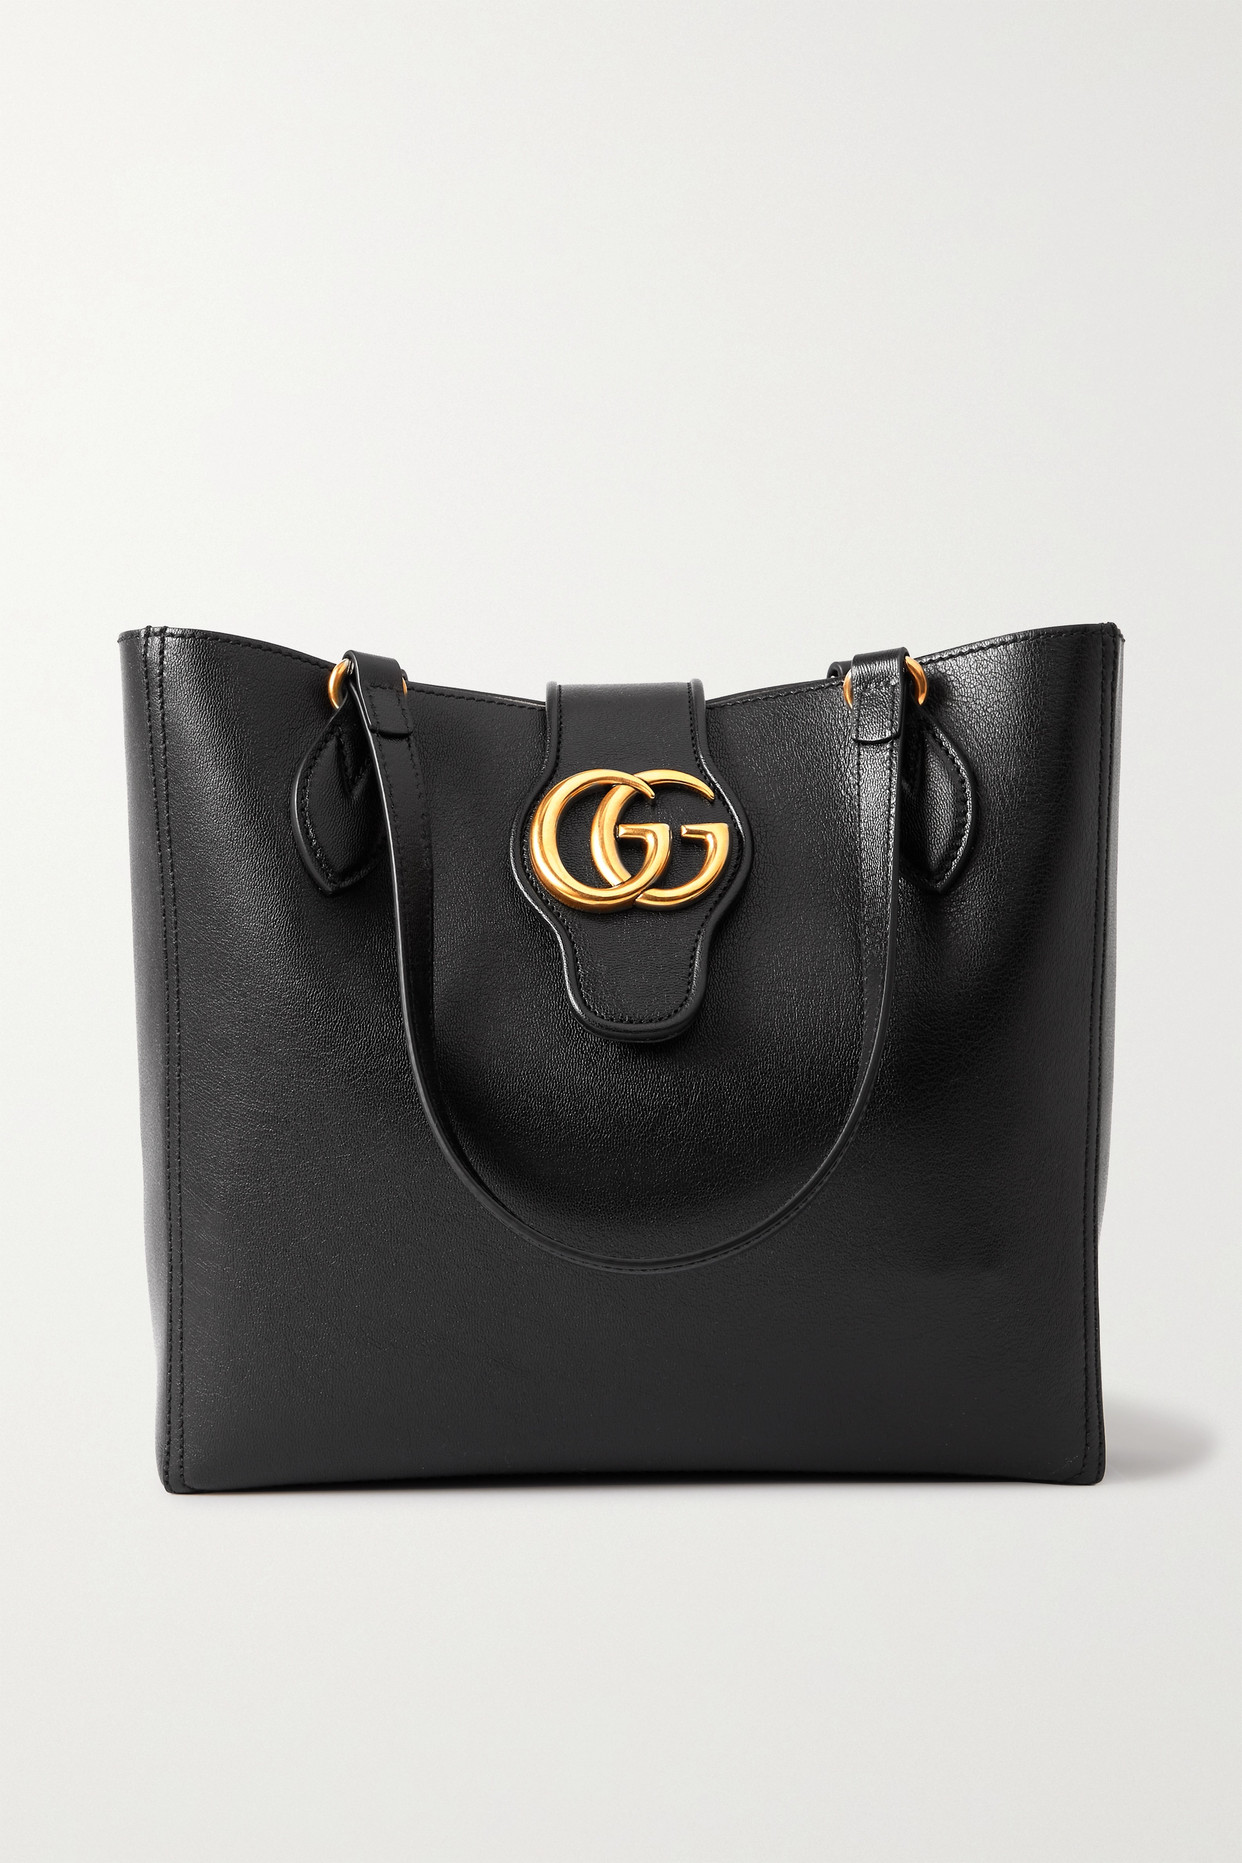 GUCCI - + Net Sustain Dahlia Textured-leather Tote - Black - one size